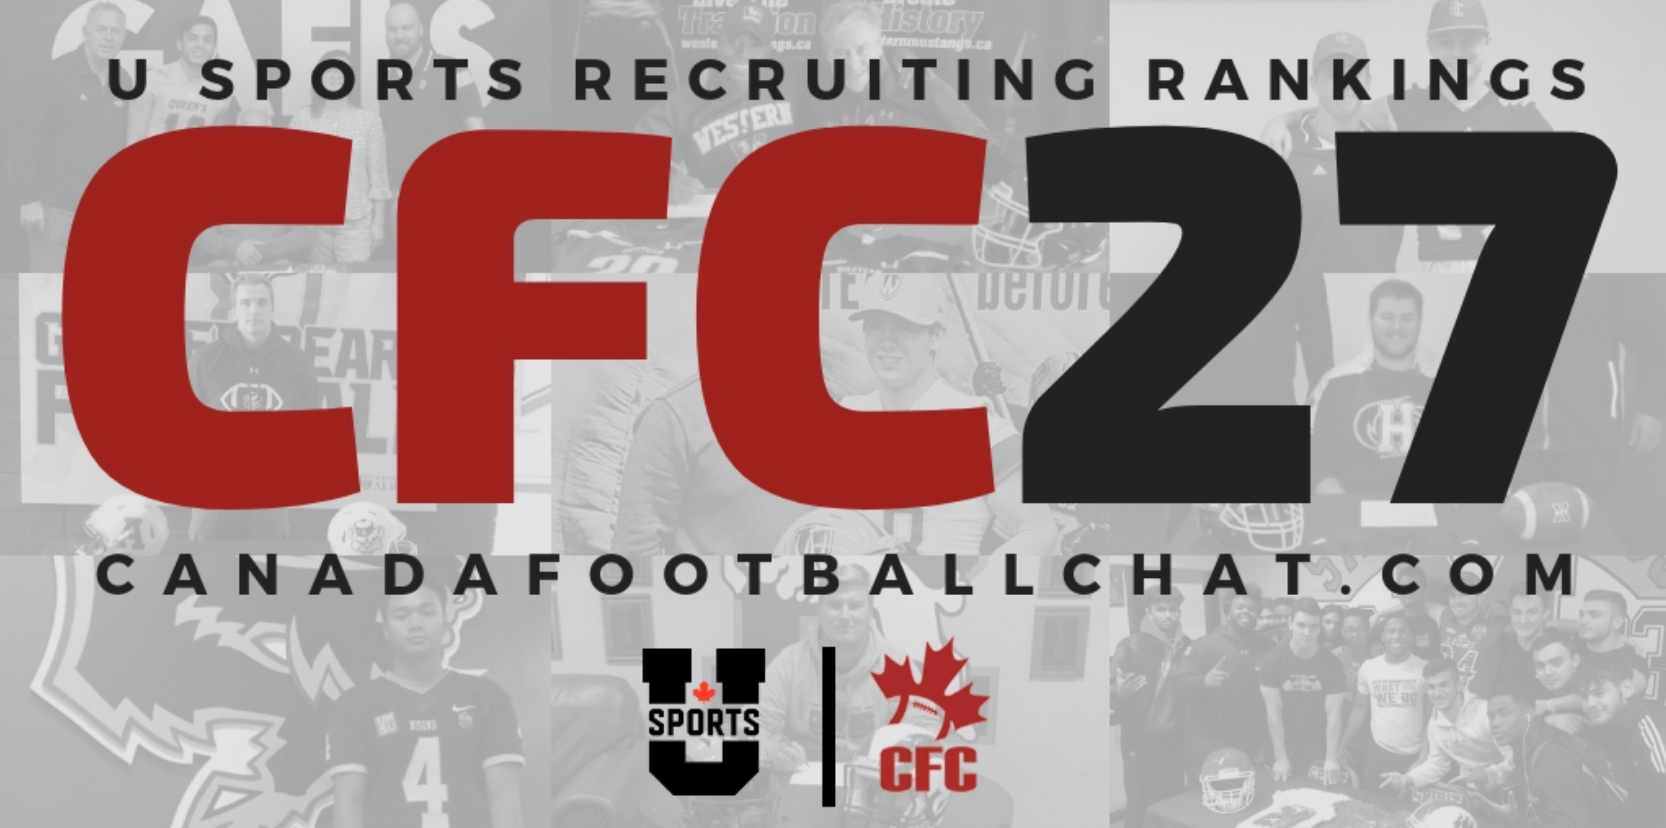 CFC27 CLASS RANKINGS (4): Montreal and Queen's push into the top 5